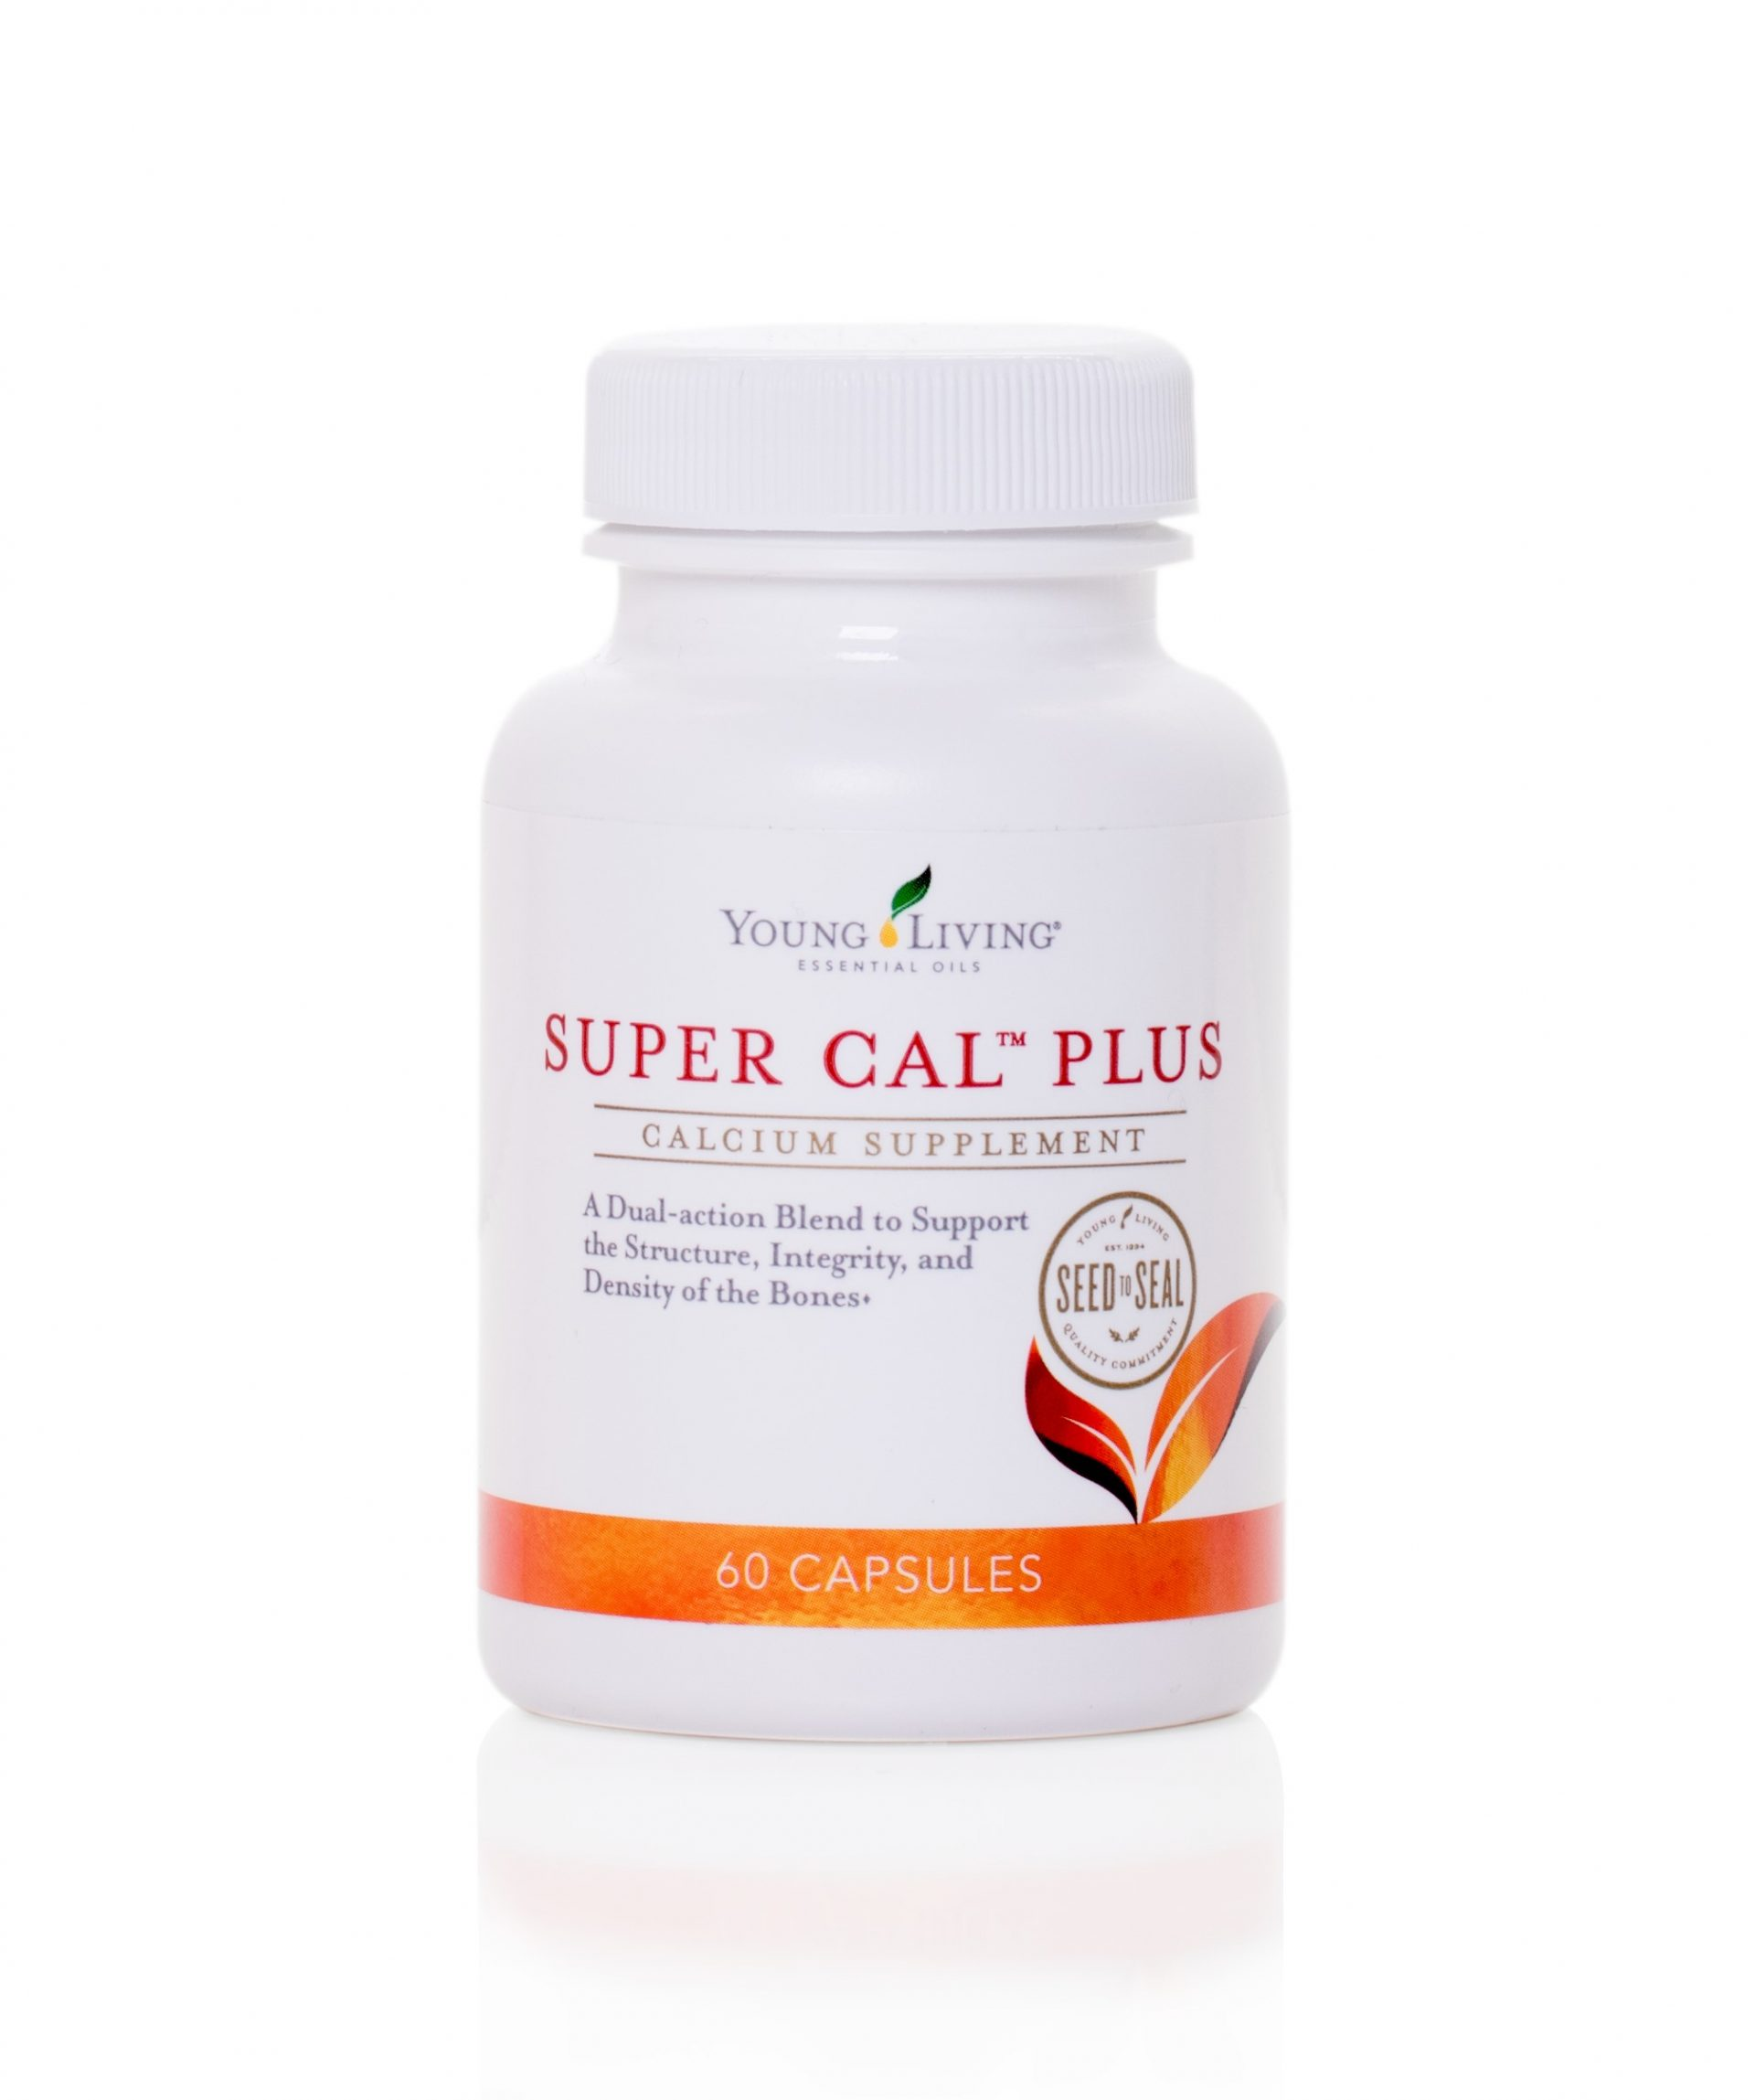 Super Cal Plus